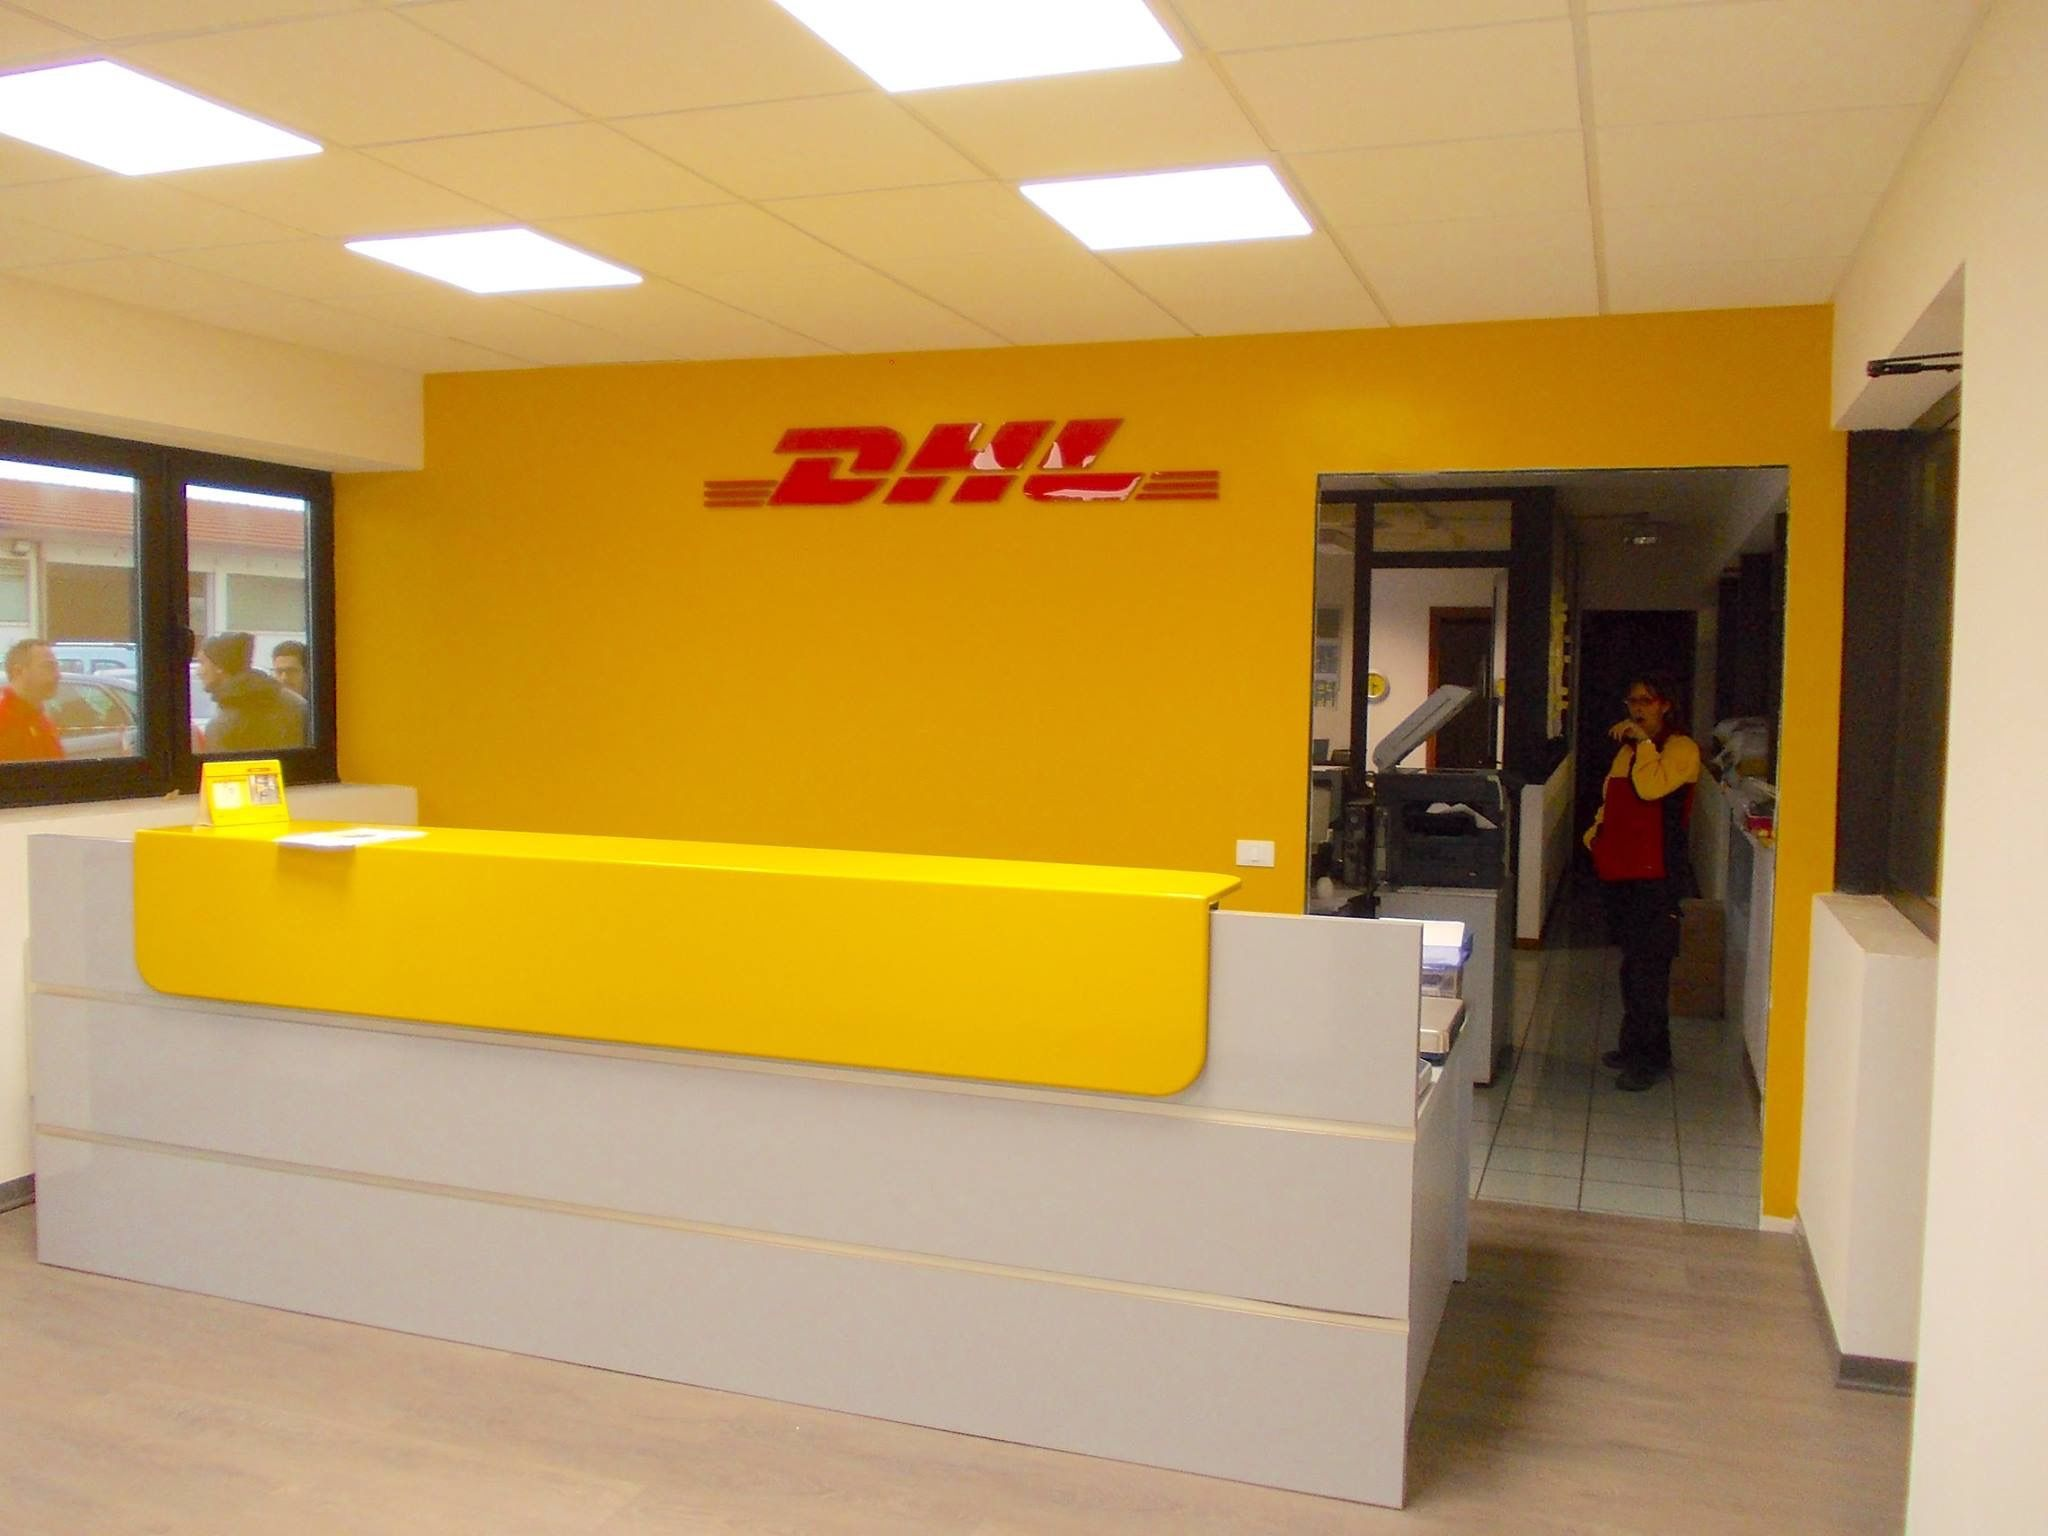 Insegne Luminose Insegne Negozi Insegne Luminose Servicepoint Dhl Treviso Courier